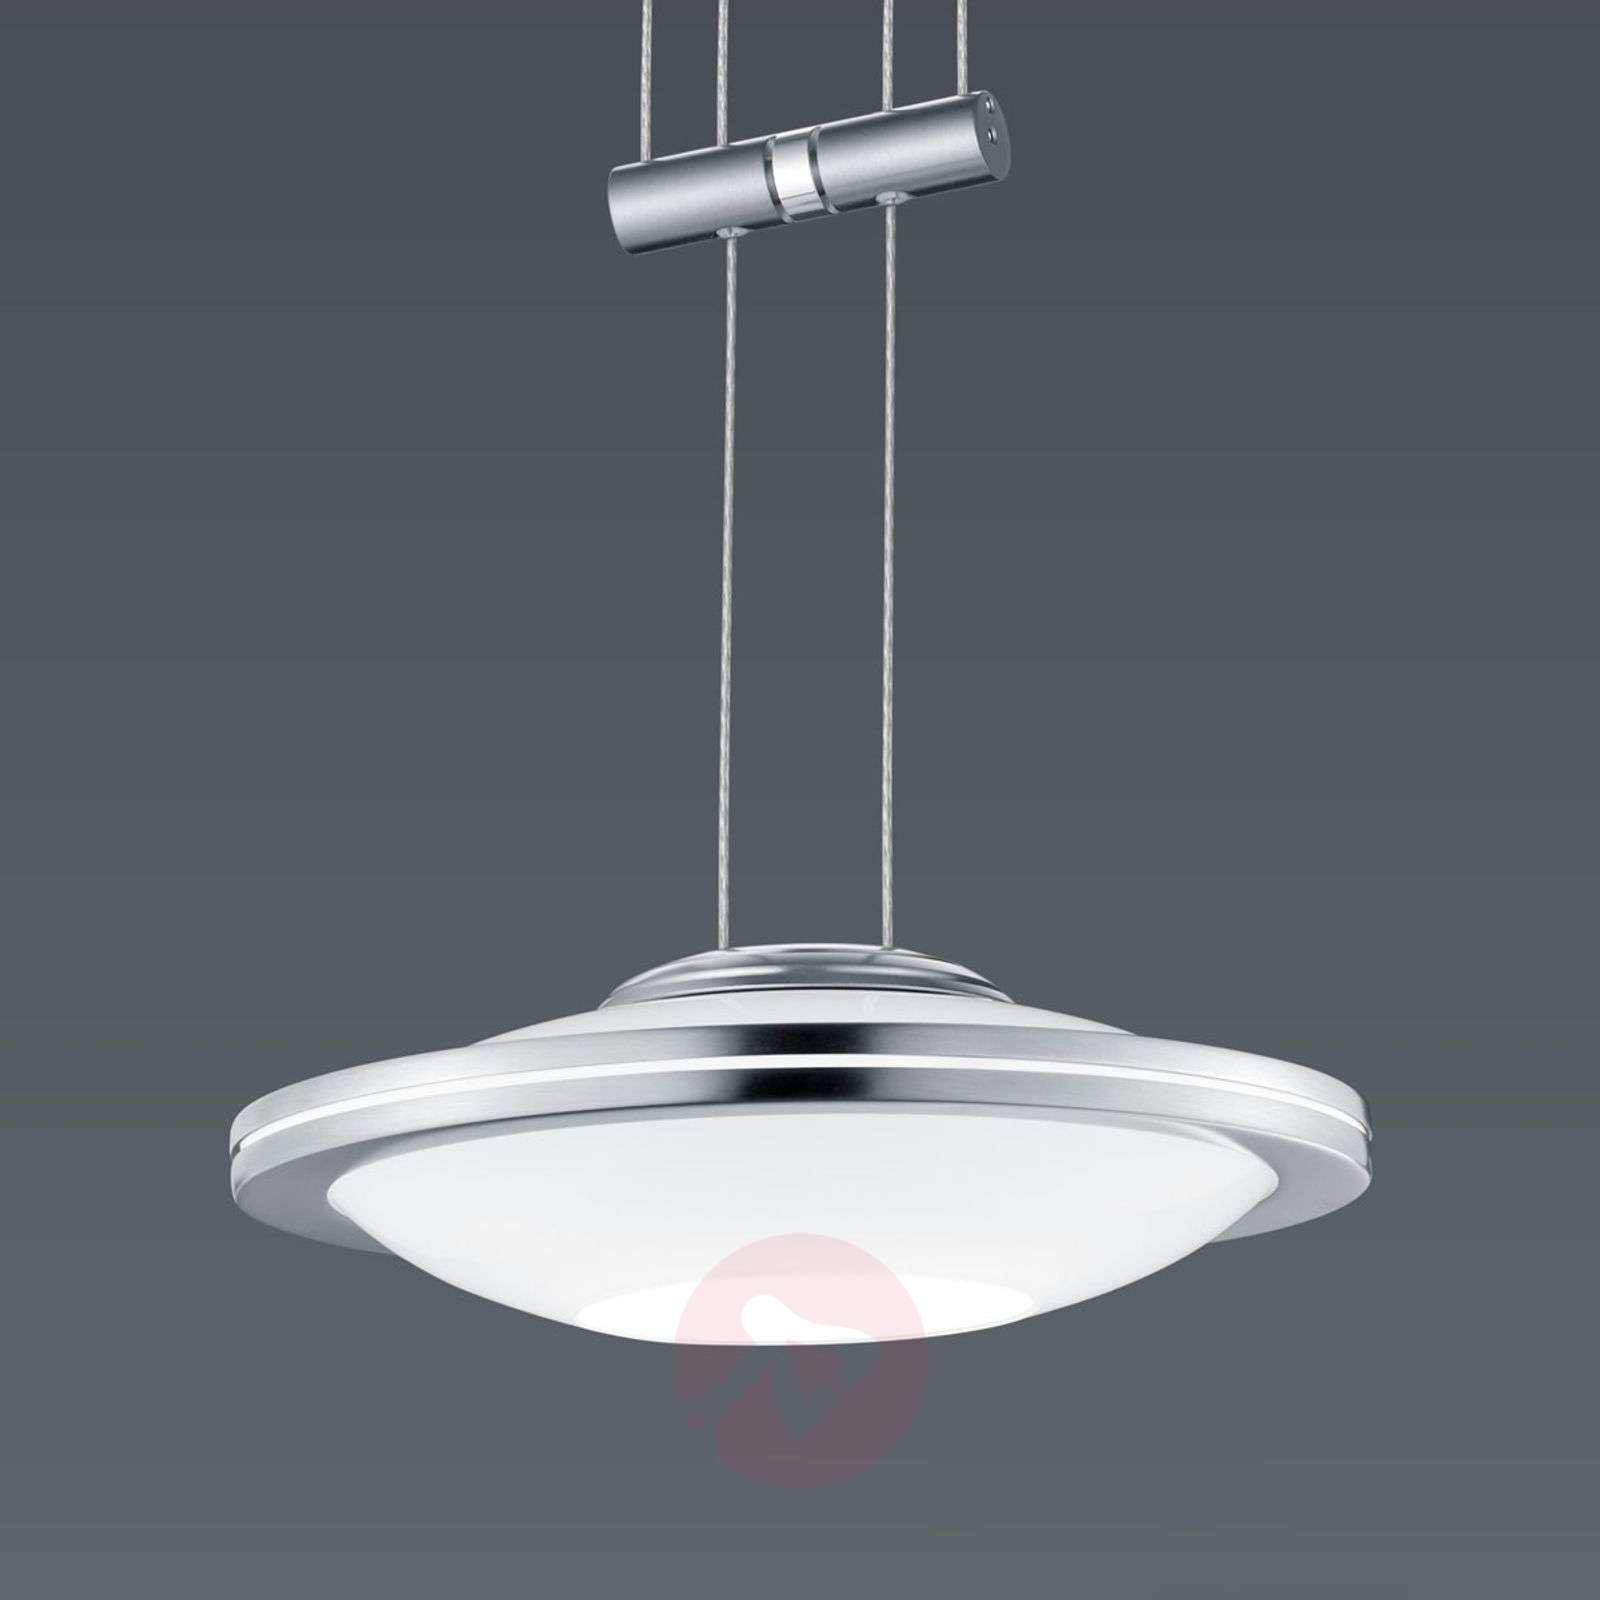 BANKAMP Strada Saturno suspension 3 lampes, 155 cm-1572088-01